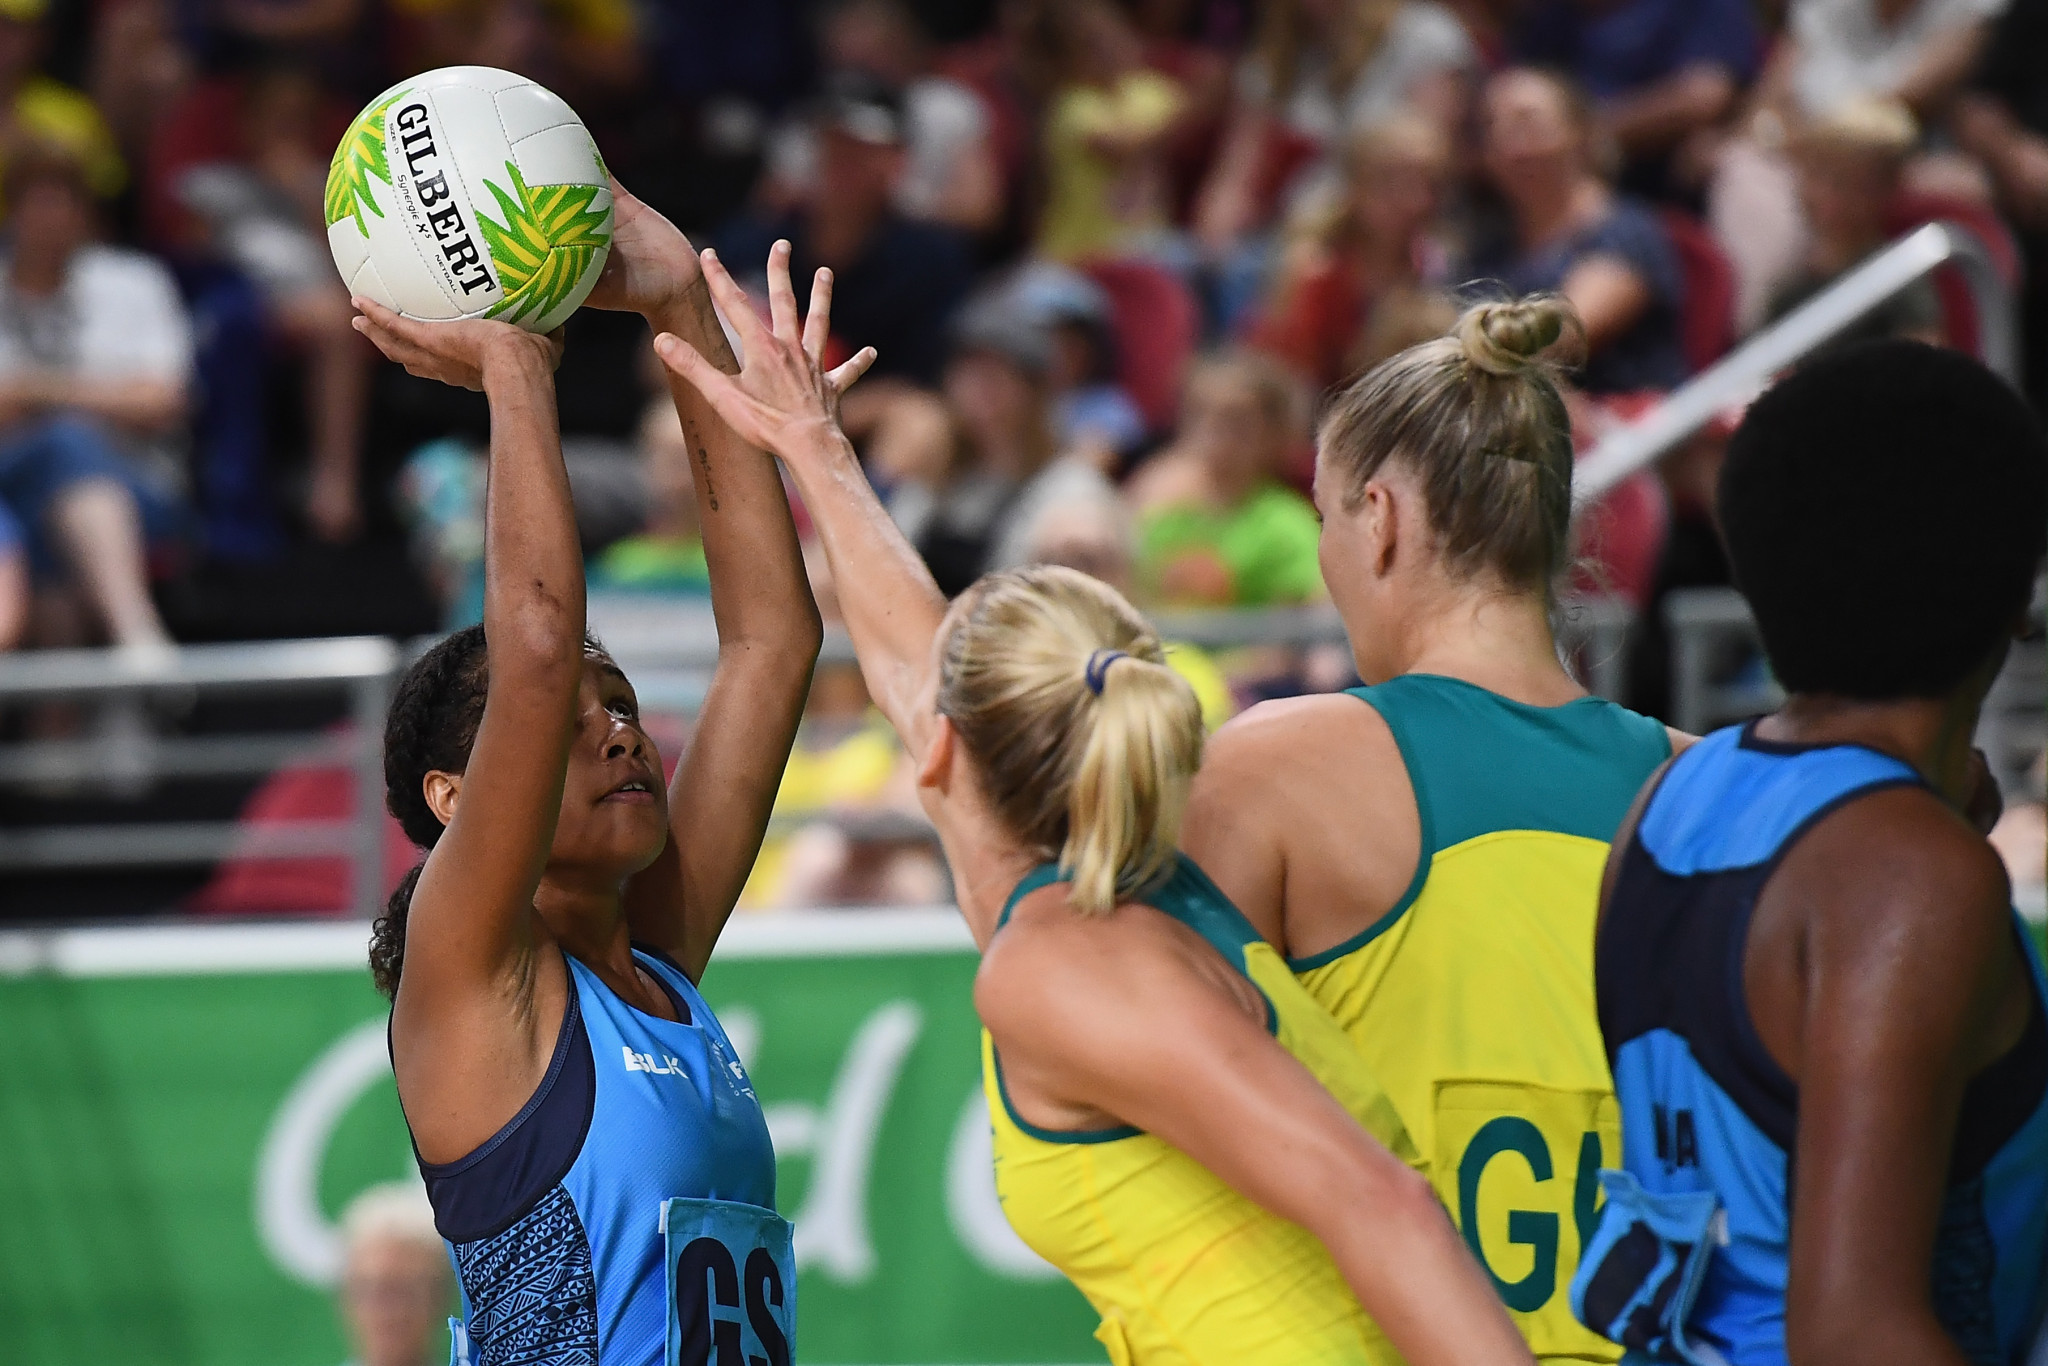 Netball Fiji to receive financial boost from Australia to prepare for World Cup as part of Pacific Sports Partnership